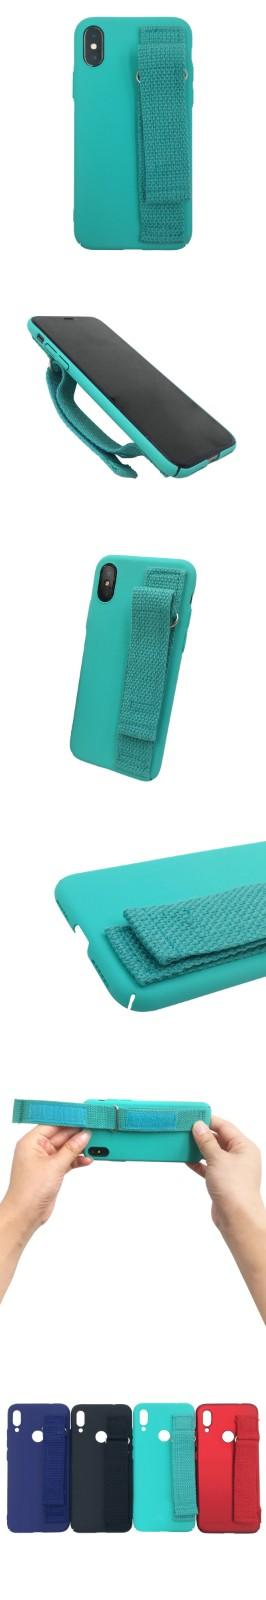 TenChen Tech hard wholesale ipad case factory price for home